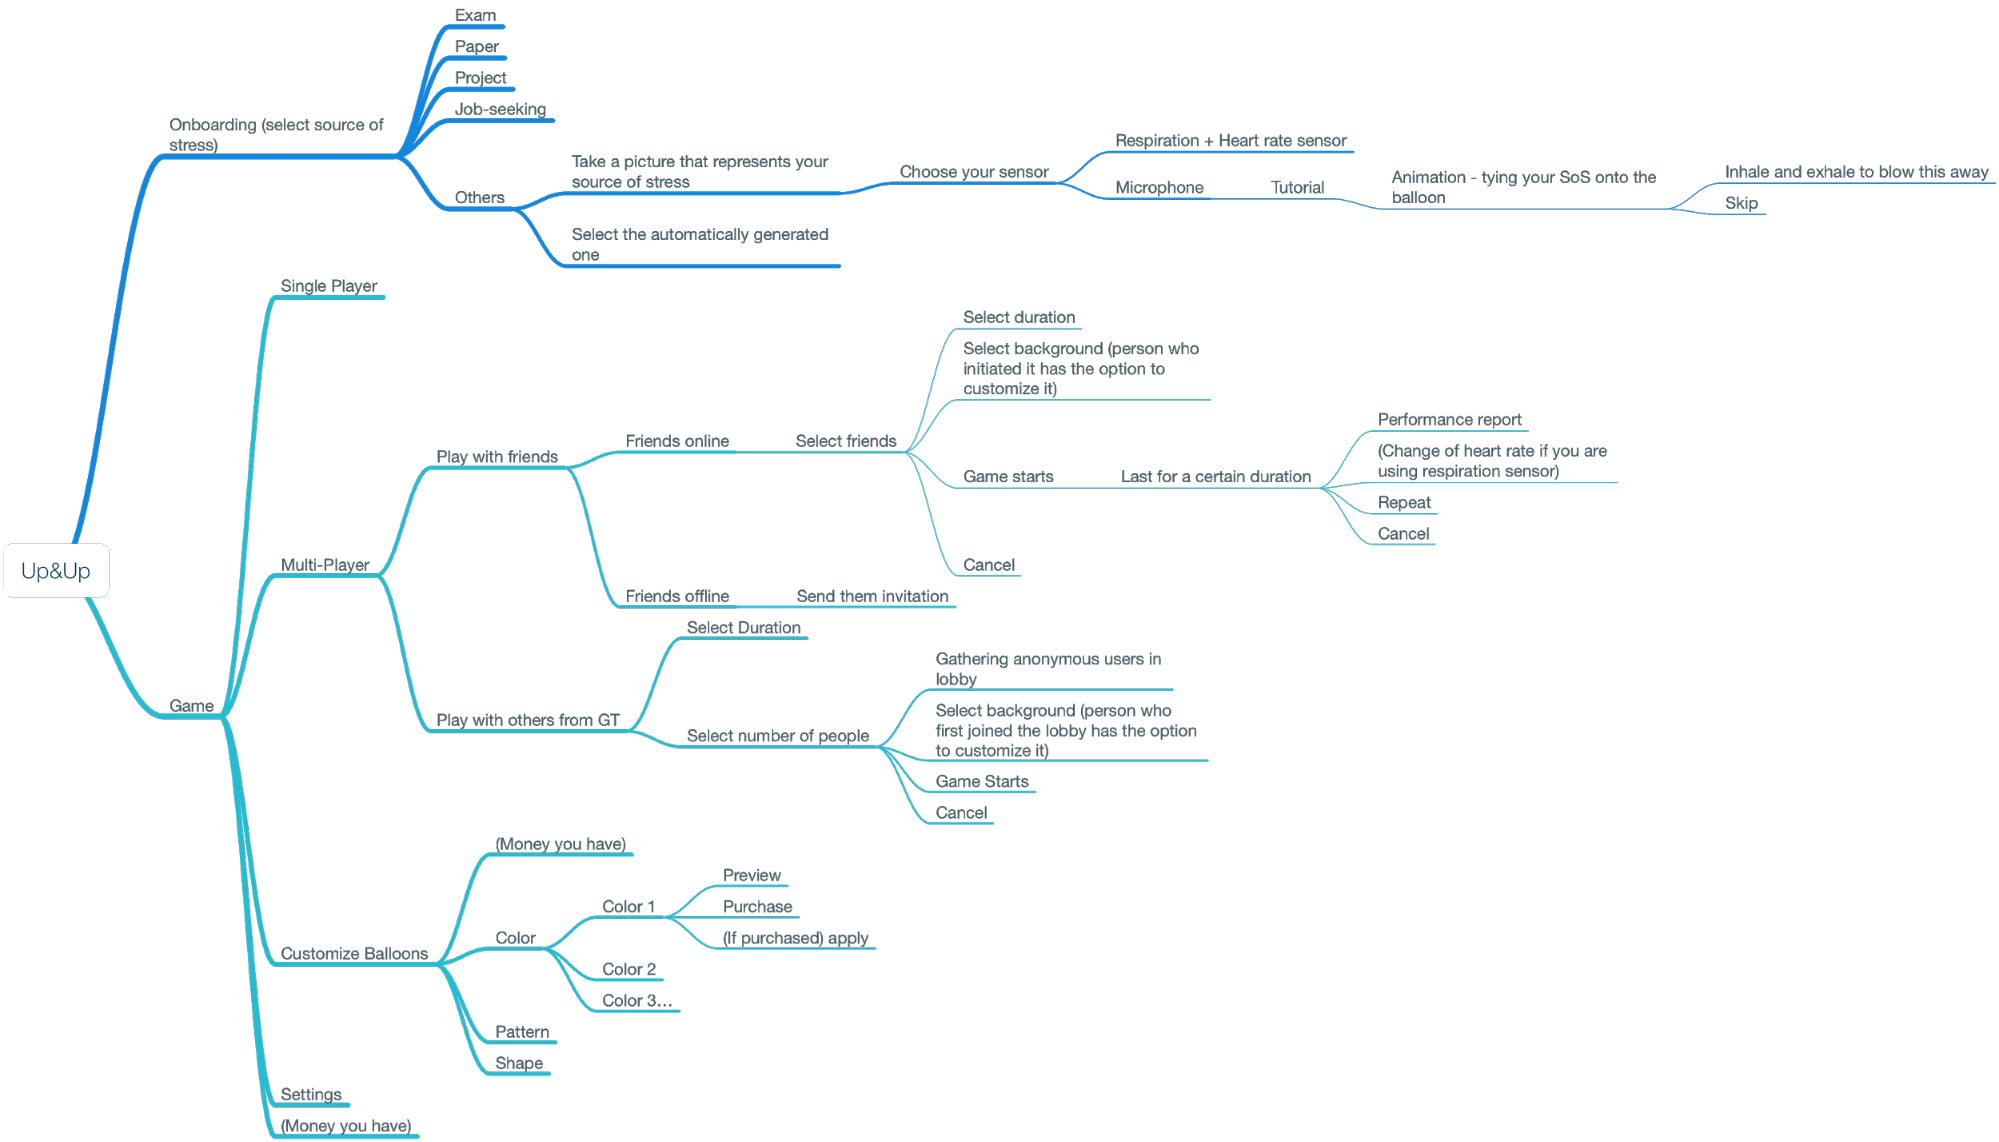 <An information architecture map showcasing the IA of Up&Up>